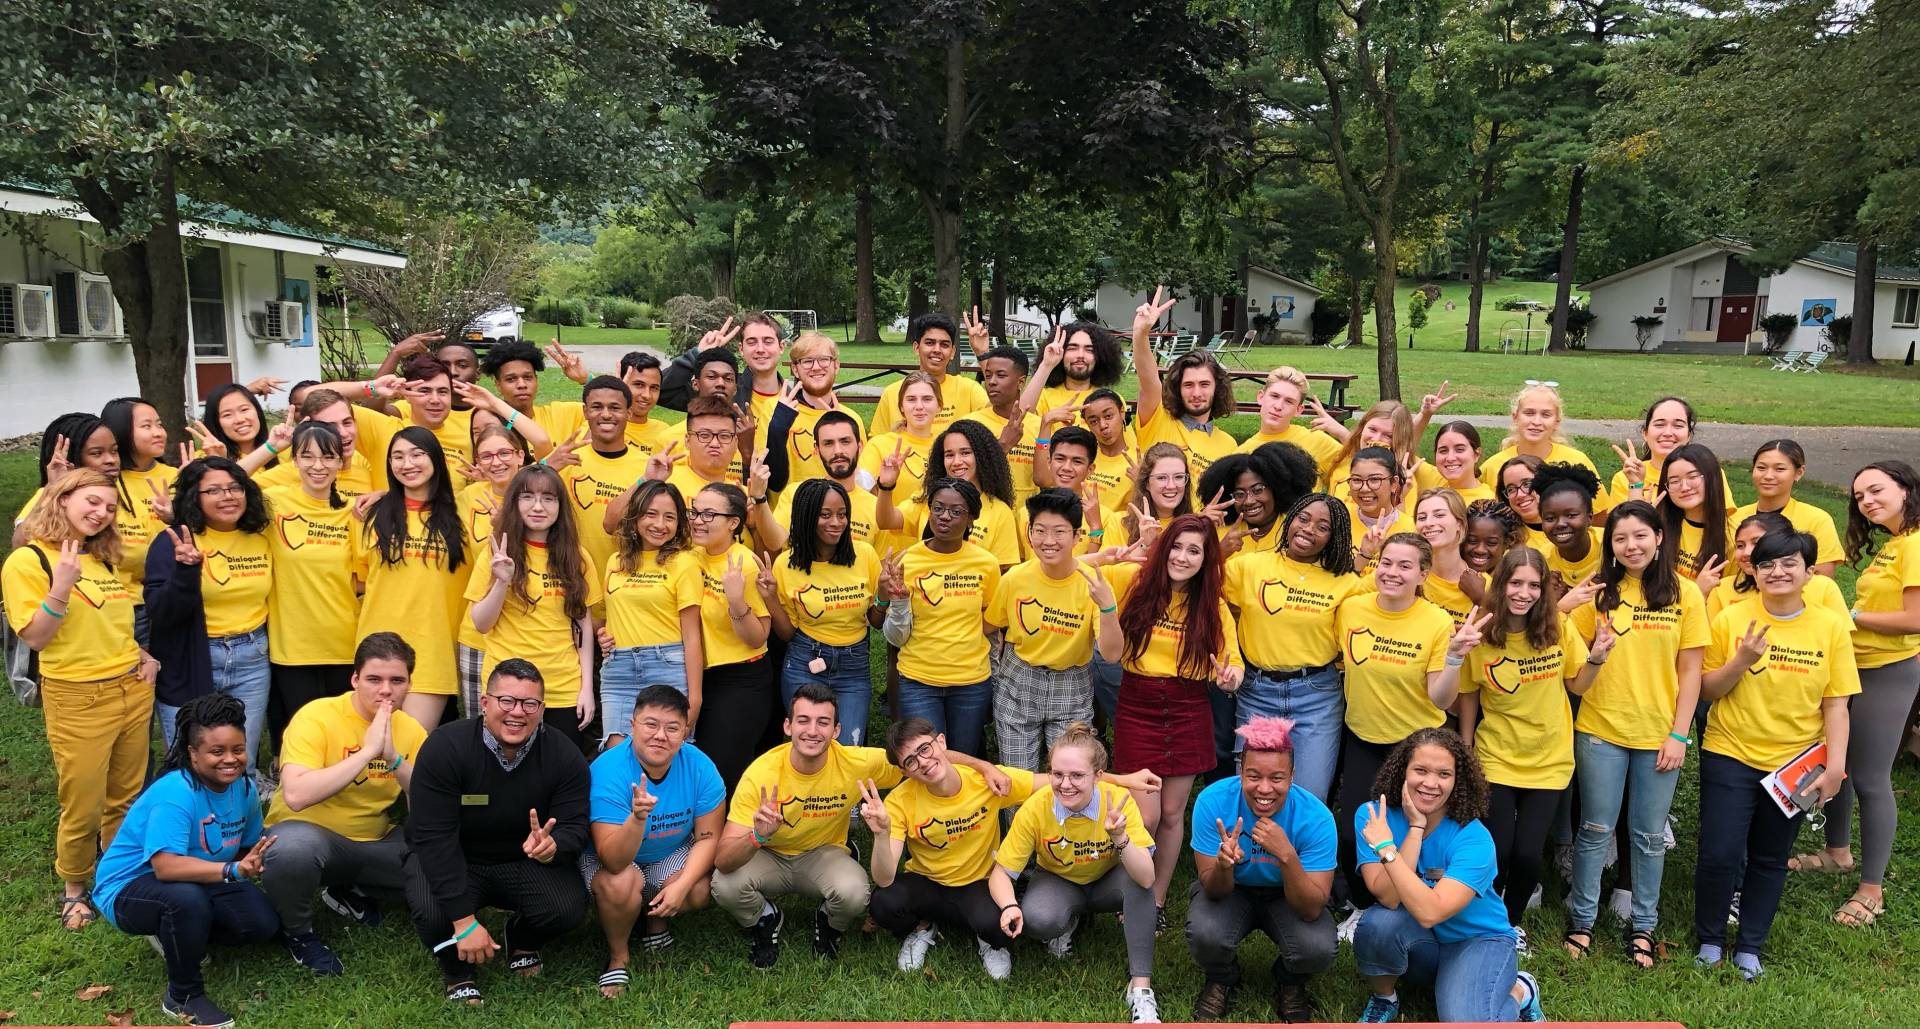 Group of students wearing yellow T-shirts